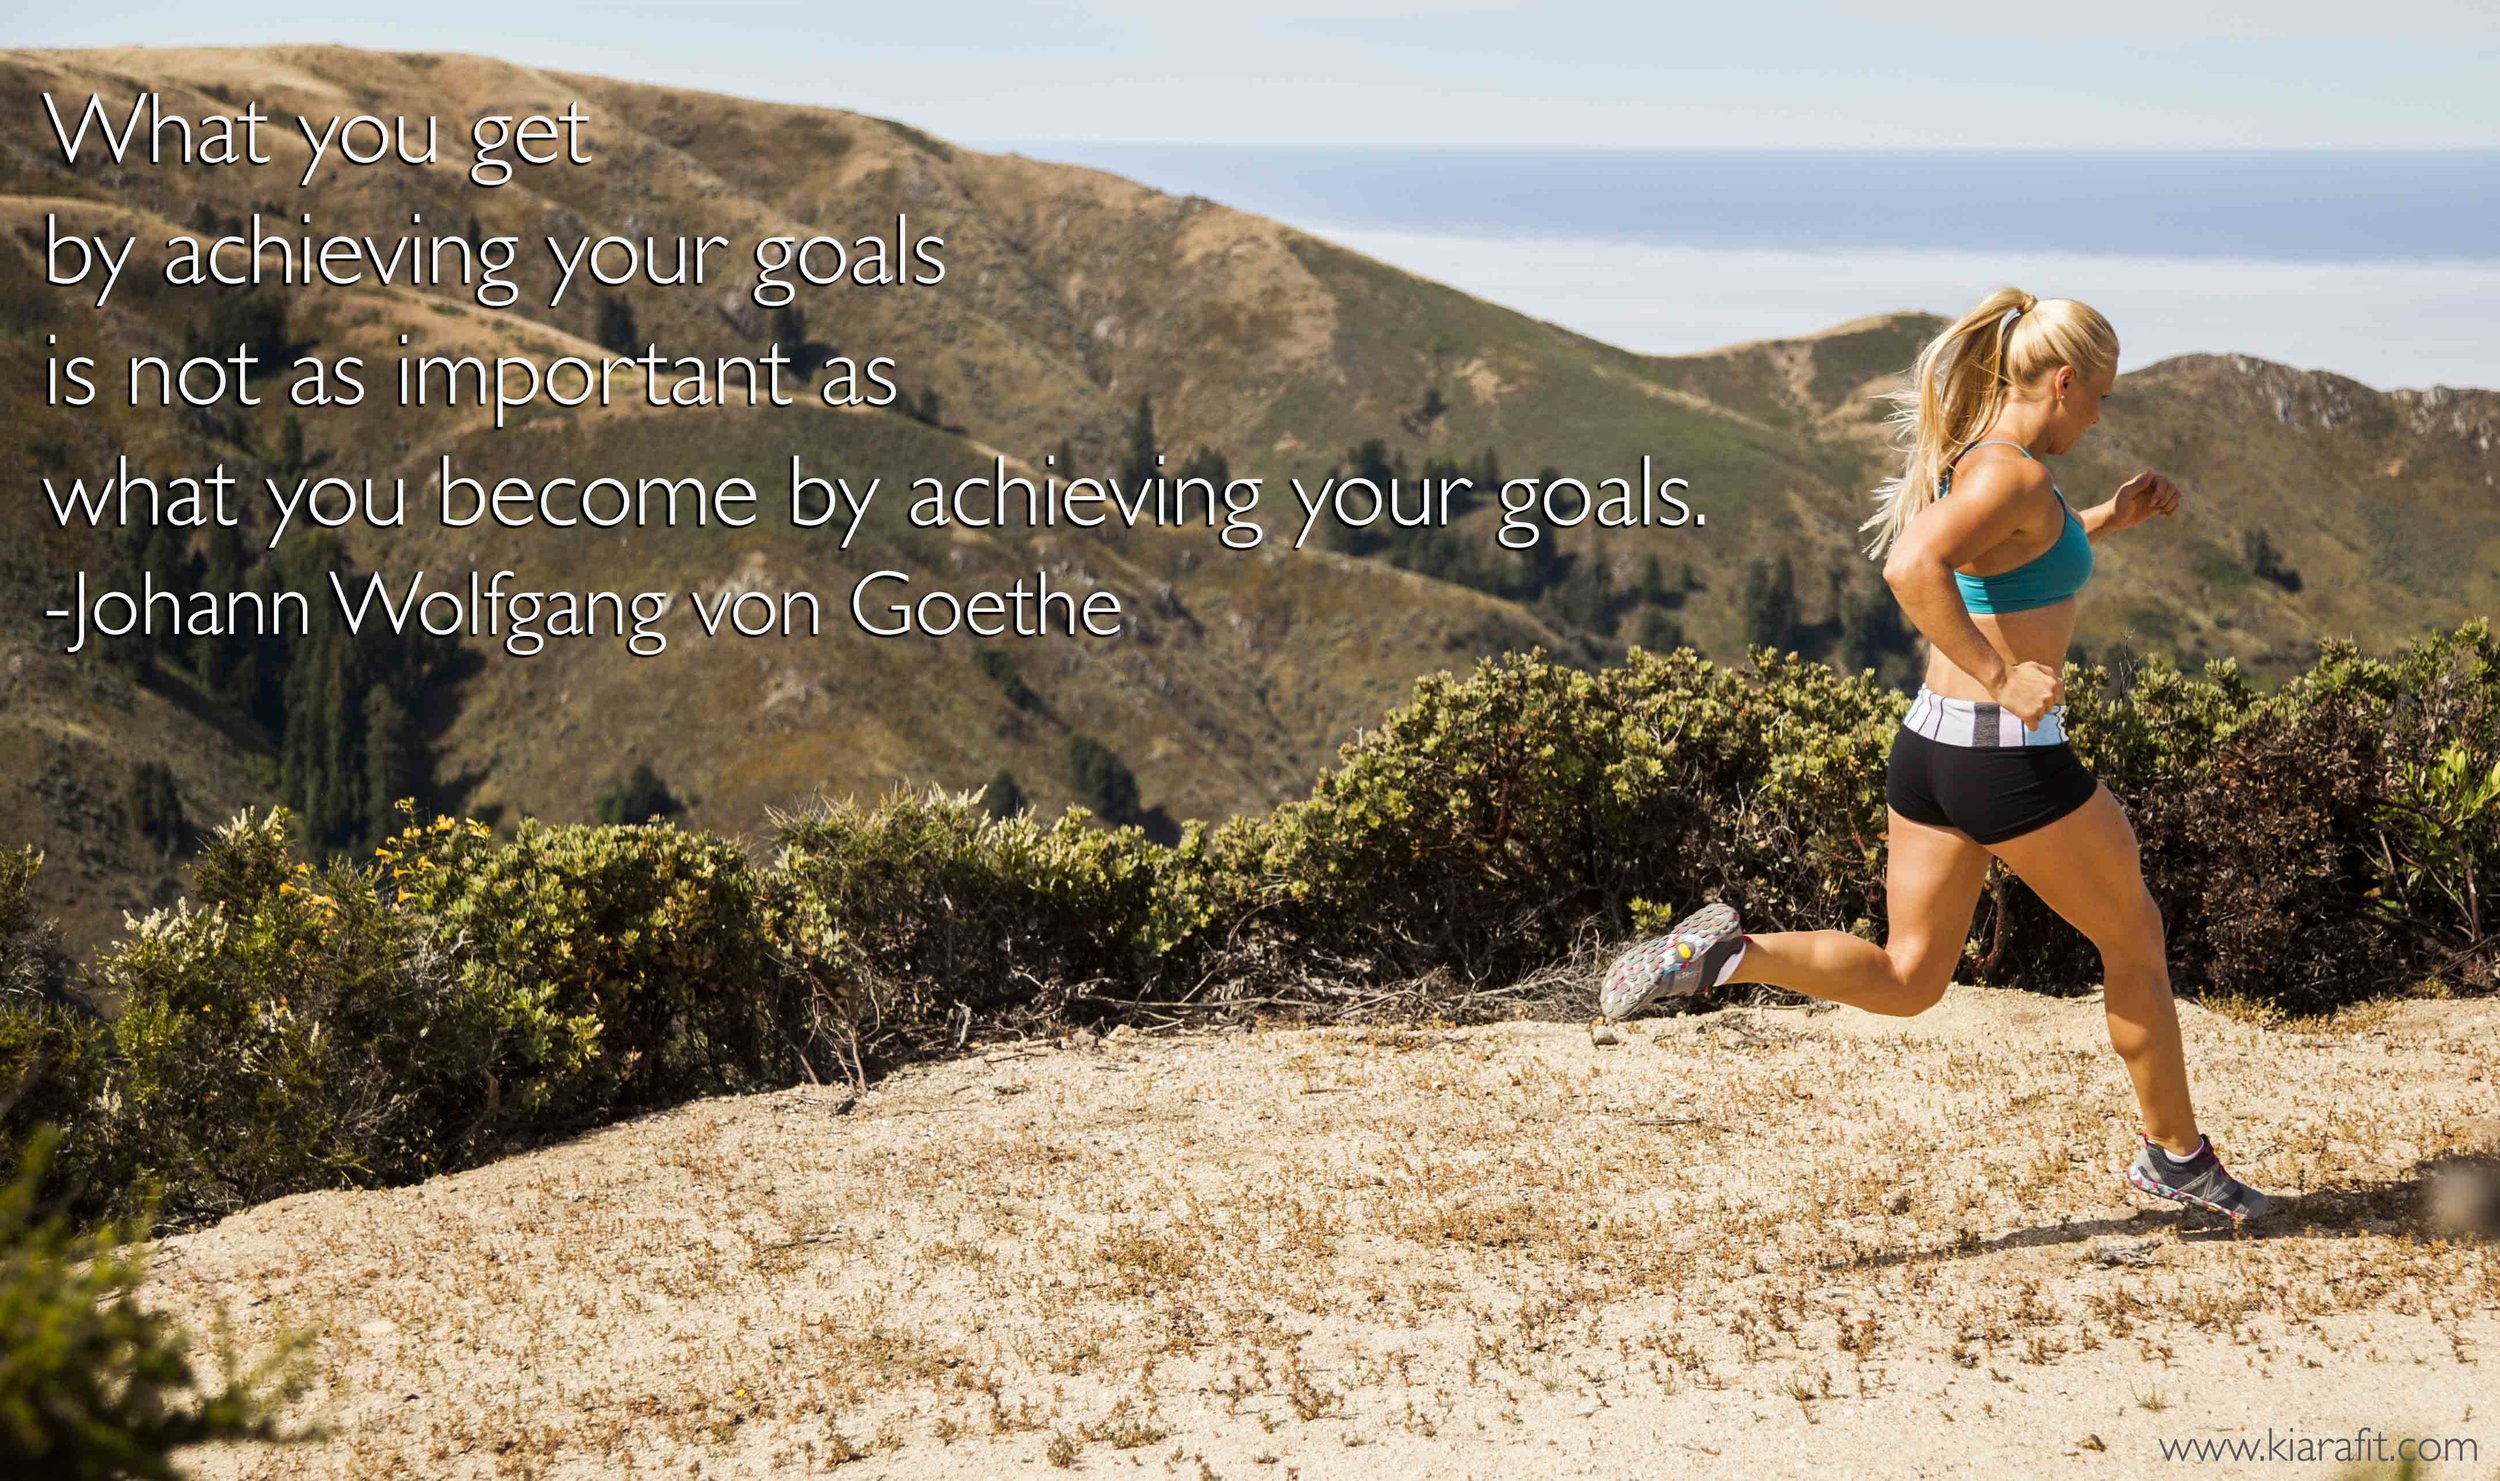 become when you achieve goals